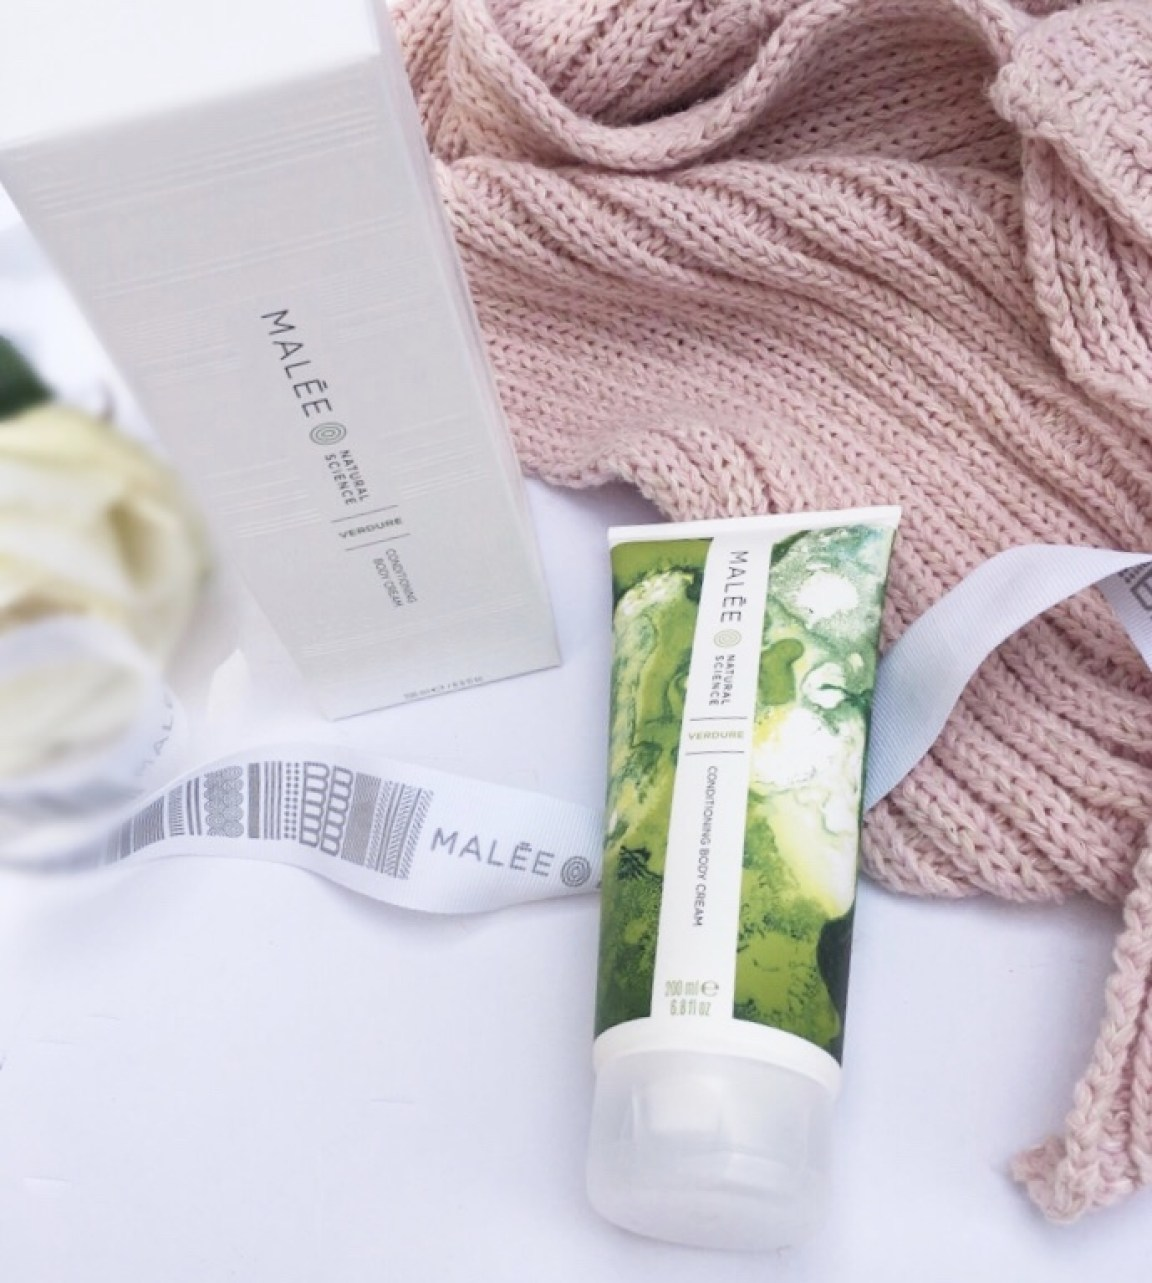 malée conditioning body cream with box